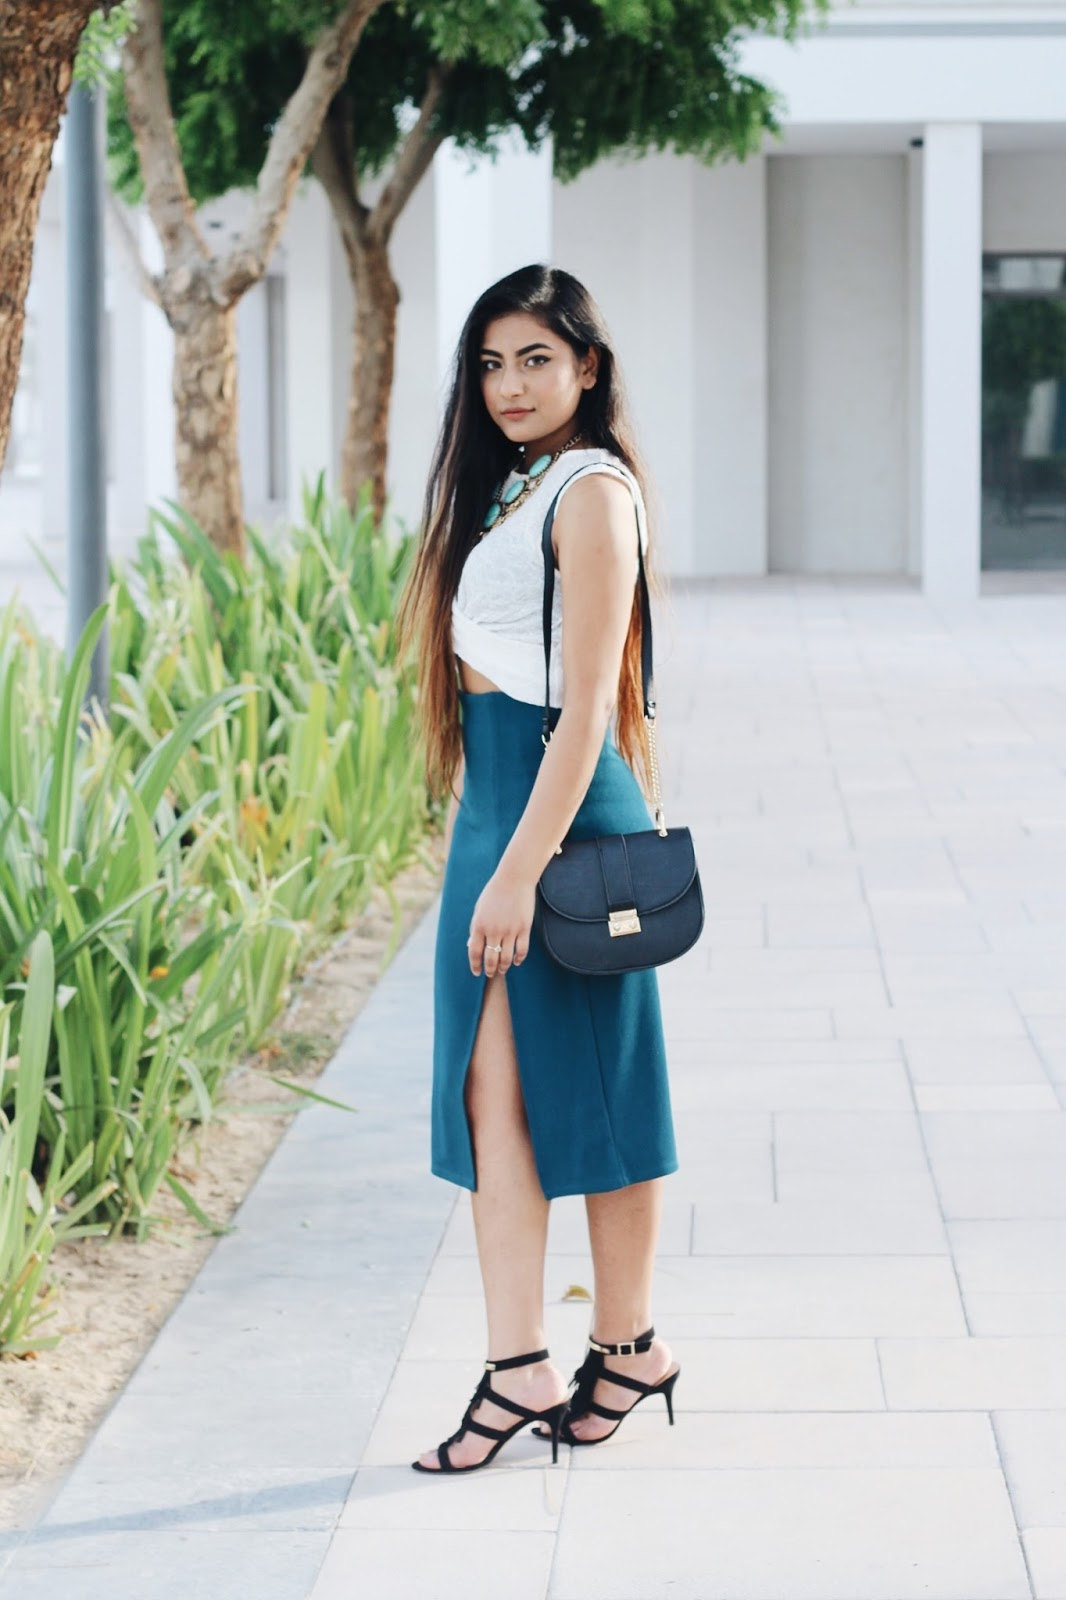 kajol paul, fashion blogger, the style sorbet, dubai fashion blog, dubai fashion blogger, street style, ootd